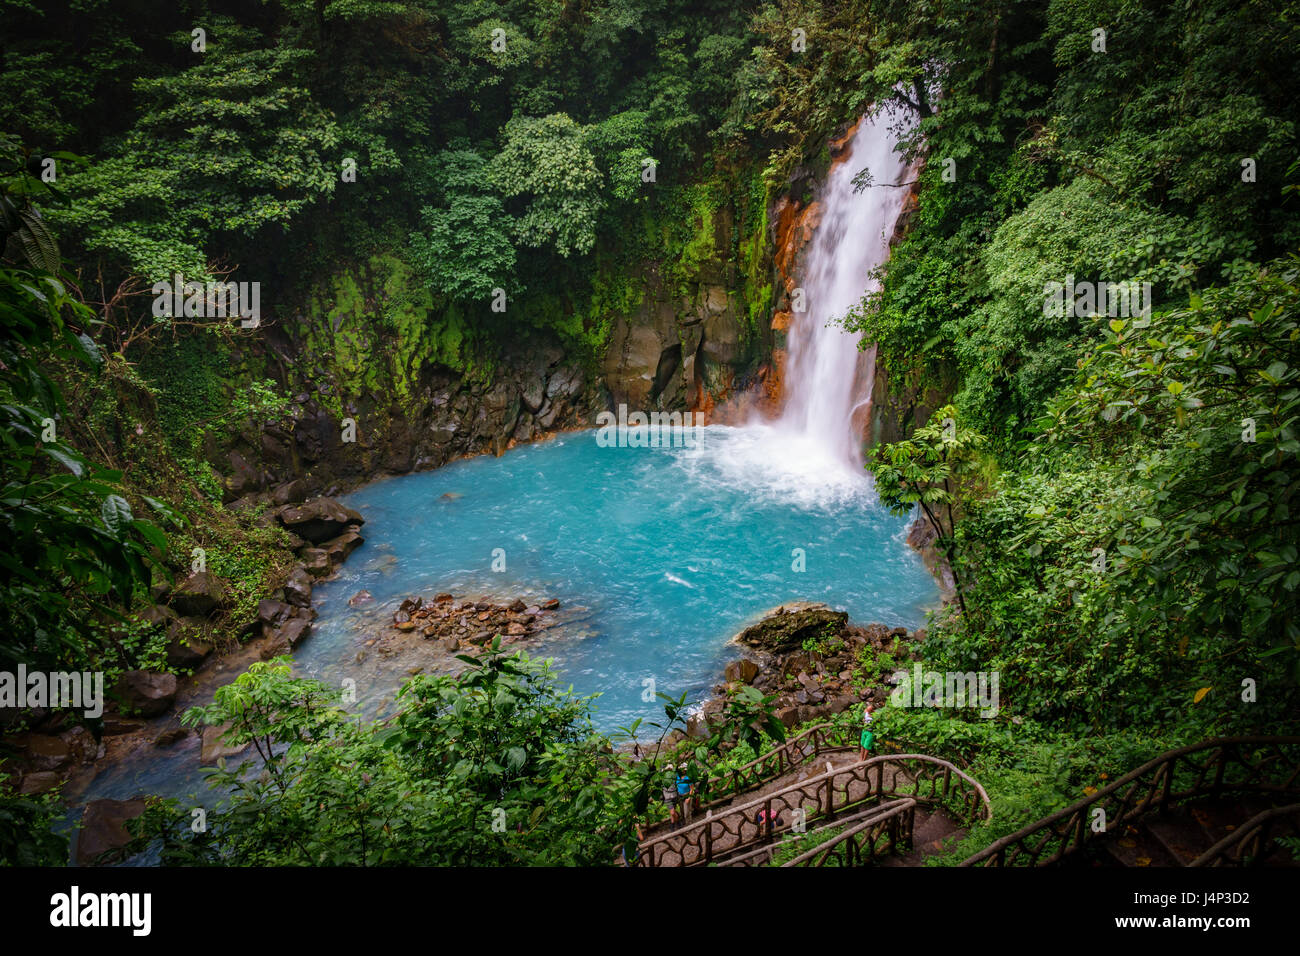 Celestial blue waterfall in volcan tenorio national park costa rica - Stock Image